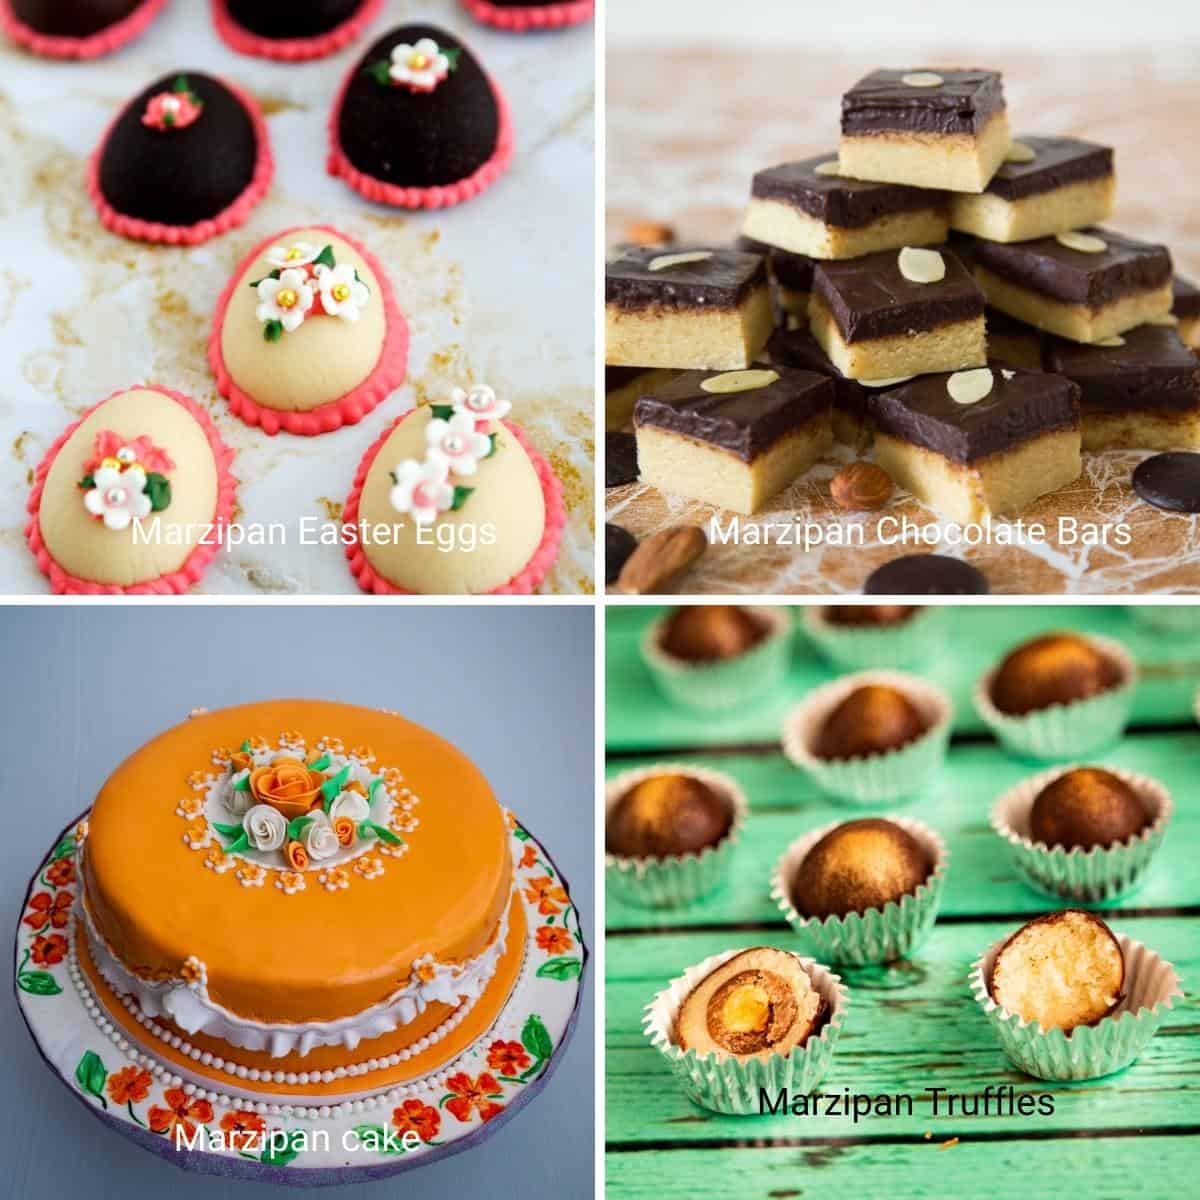 Collage of treats made with marzipan.